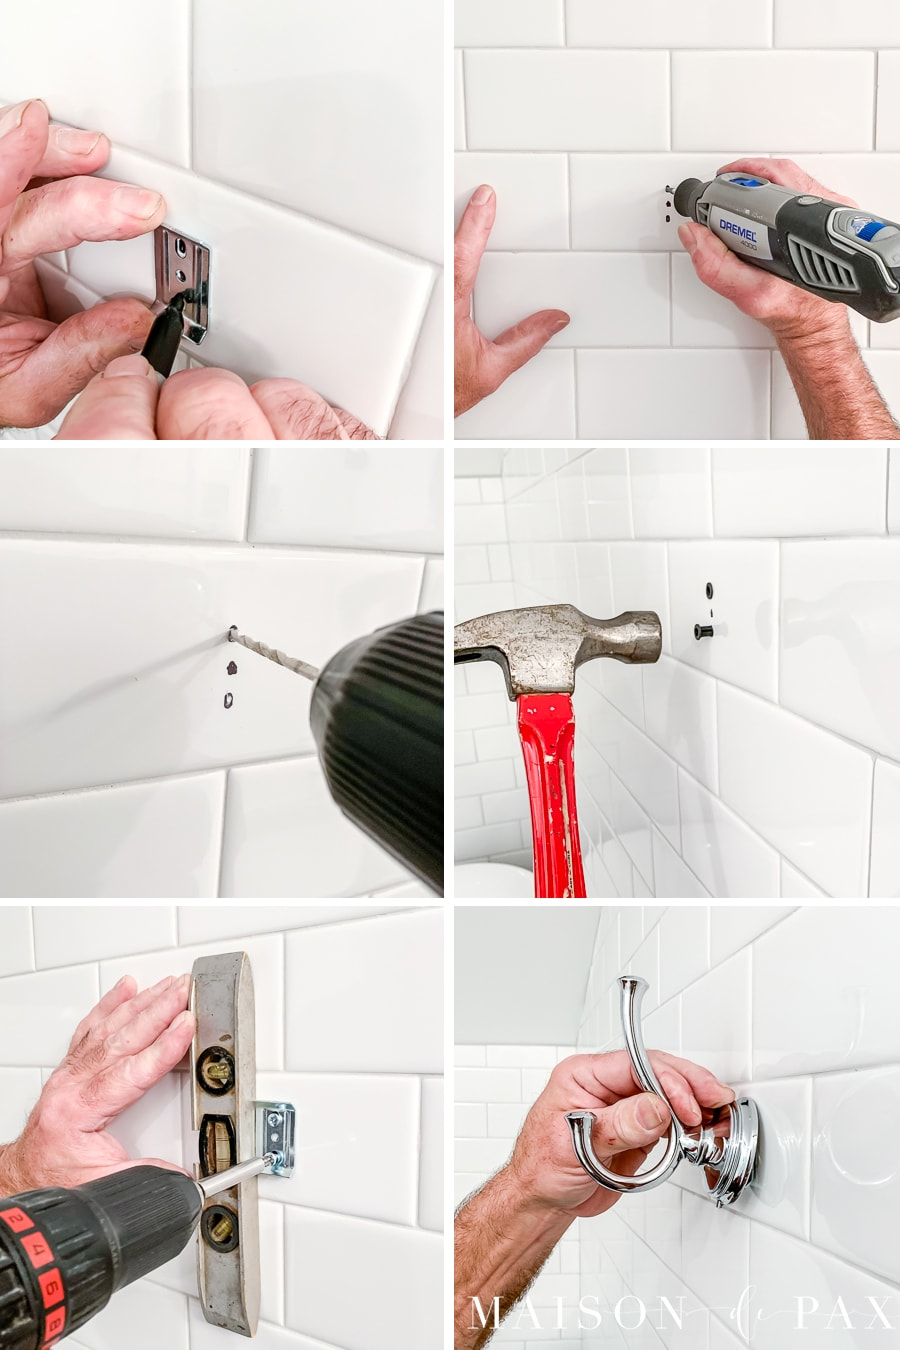 step by step pictures for drilling into tile to hang a towel hook